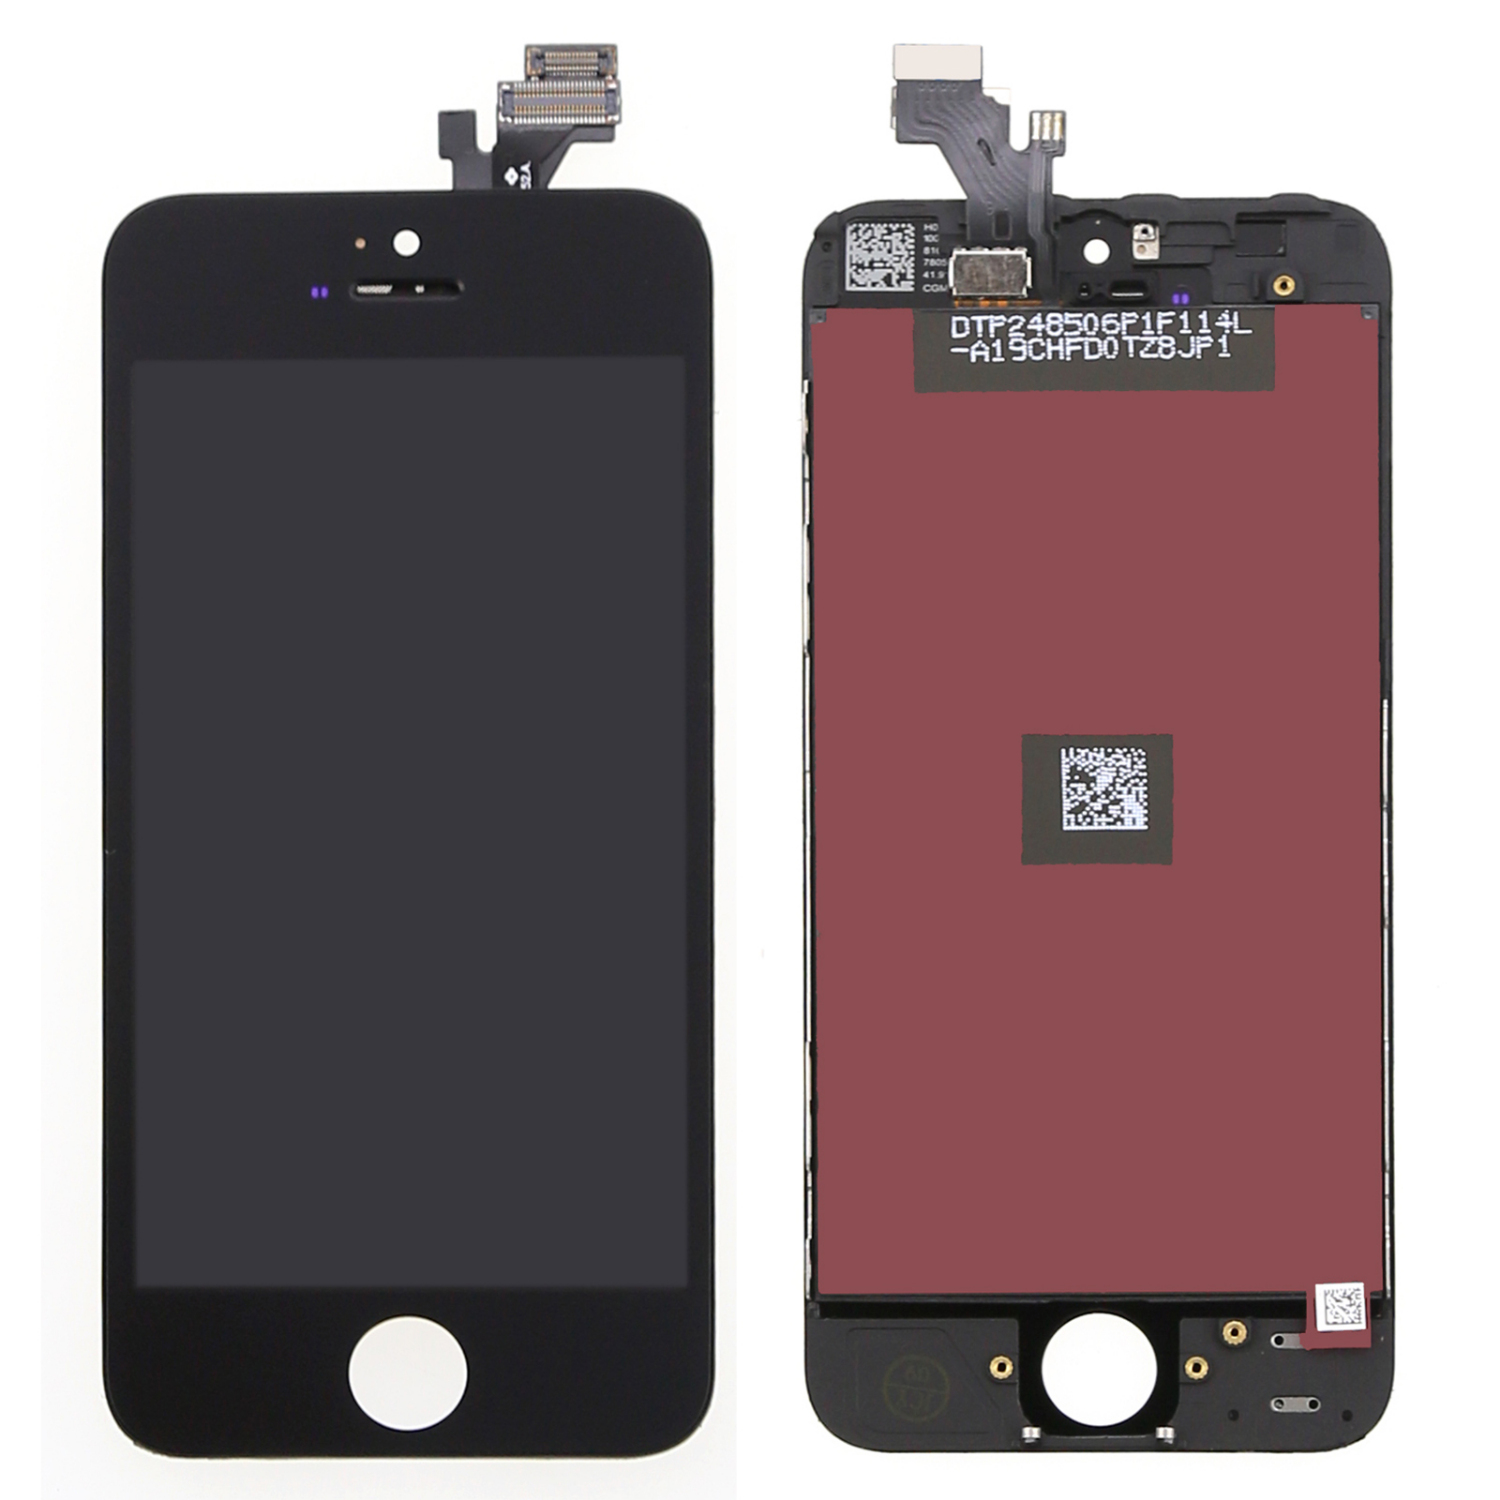 cran vitre tactile lcd chassis pour iphone 5 5c 5s outils blanc noir en option ebay. Black Bedroom Furniture Sets. Home Design Ideas